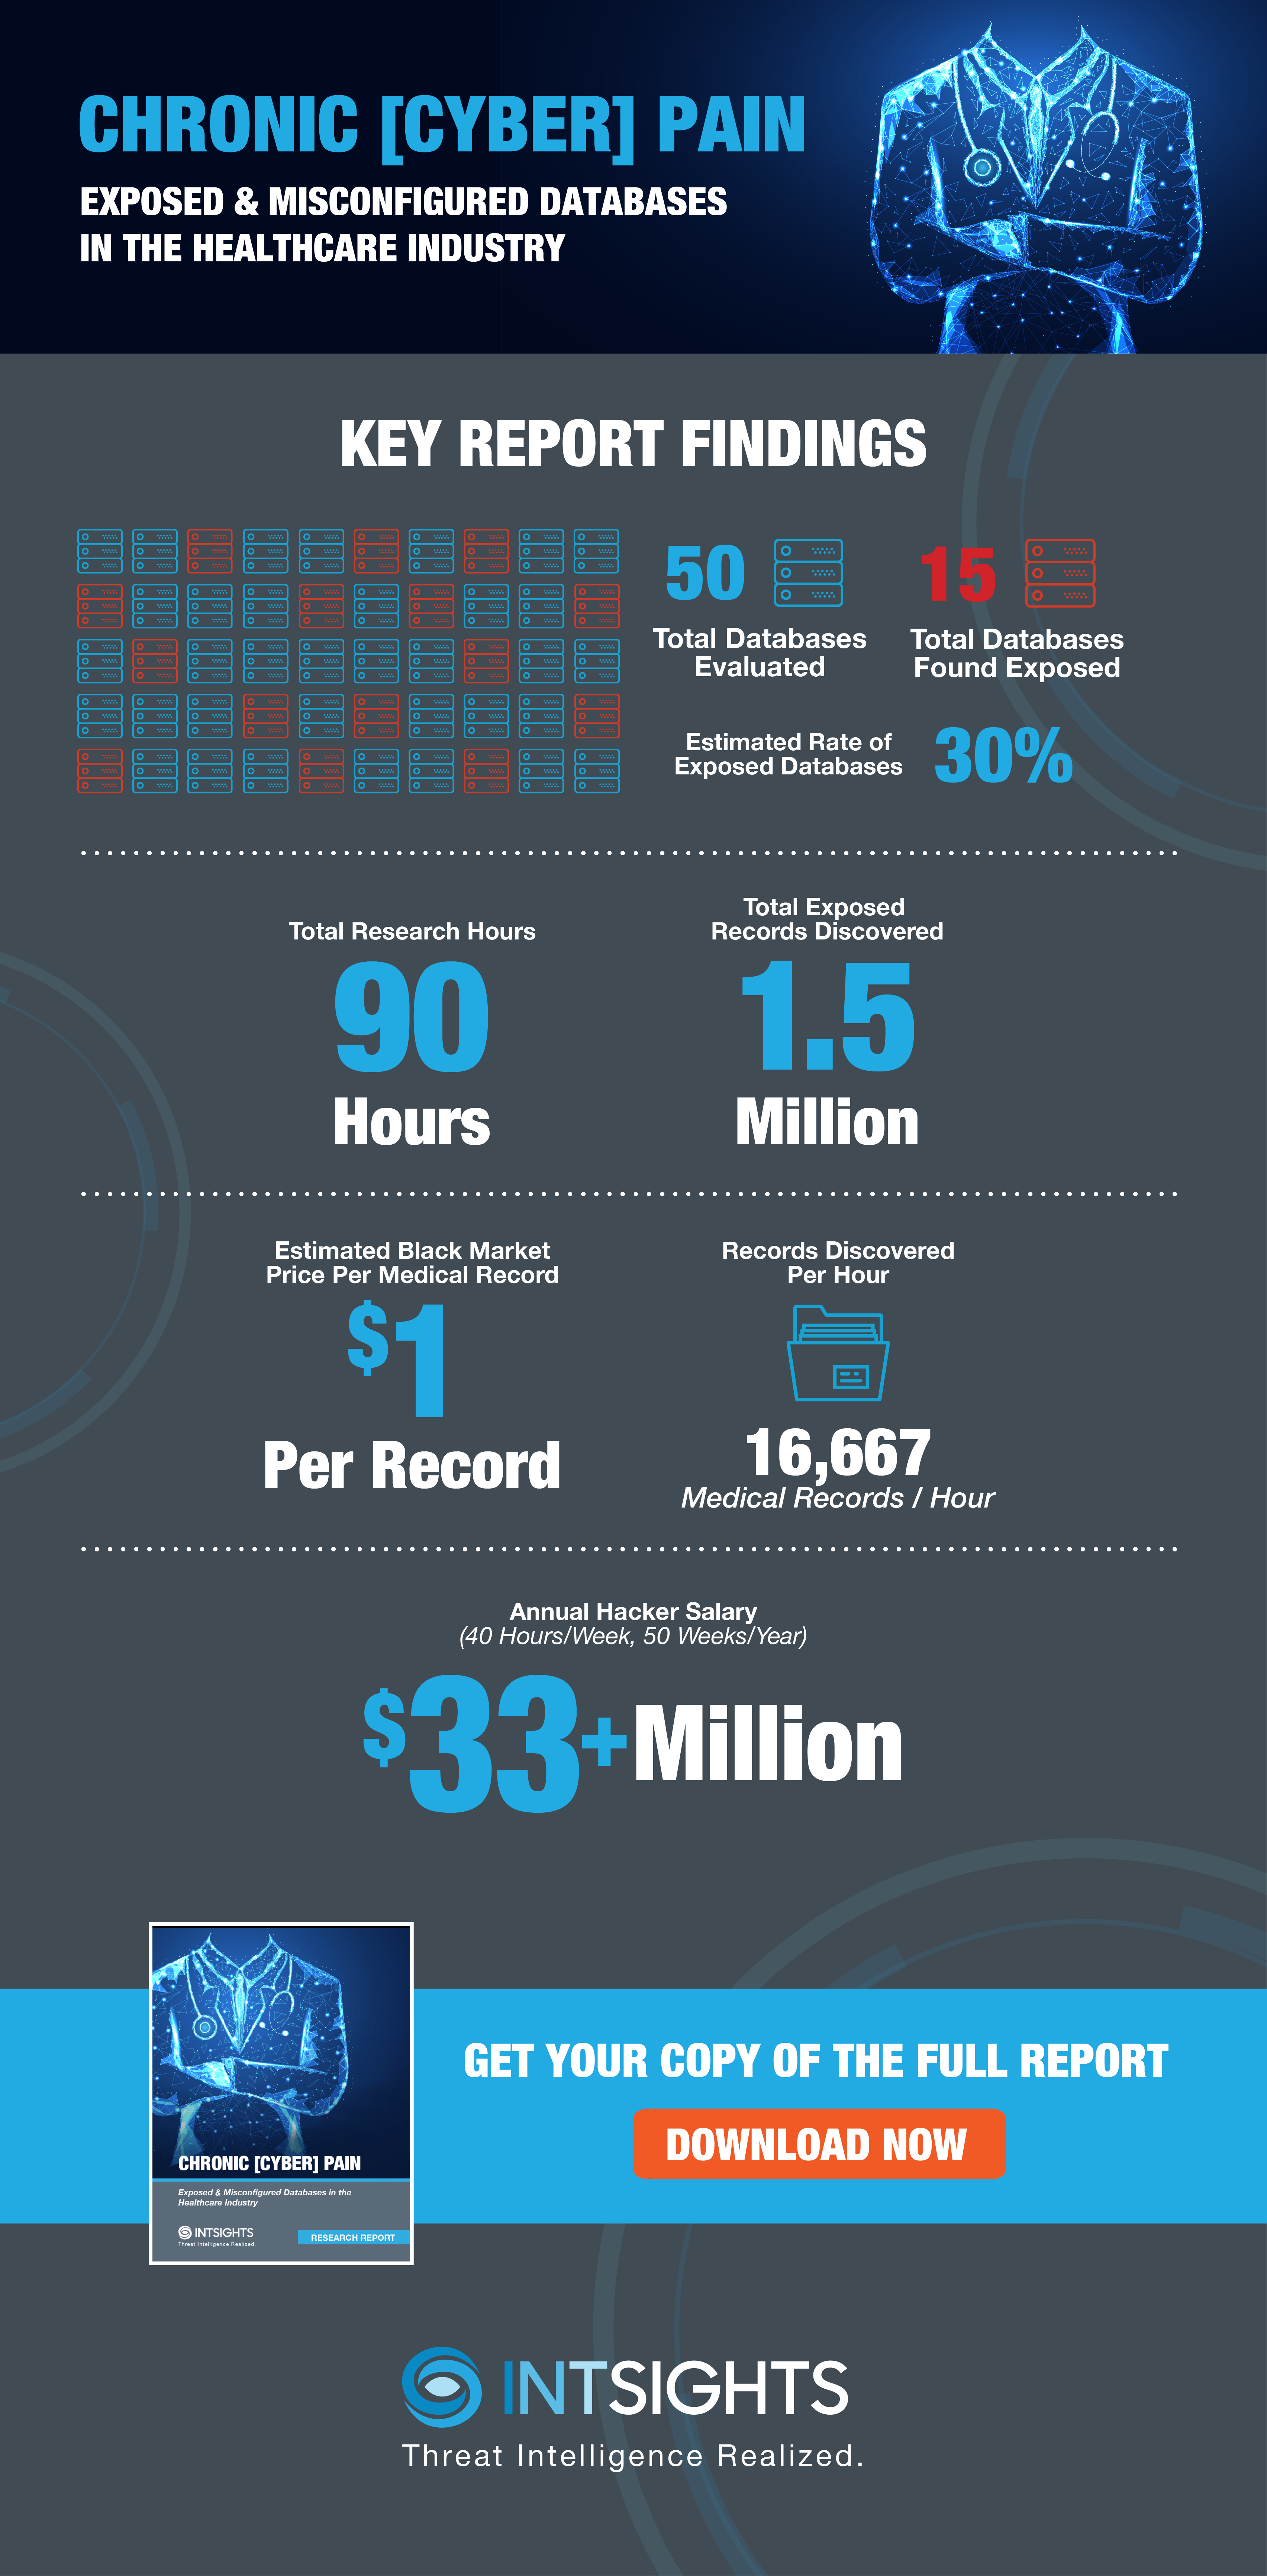 IntSights_Cyber_Pain_Infographic_V6-01